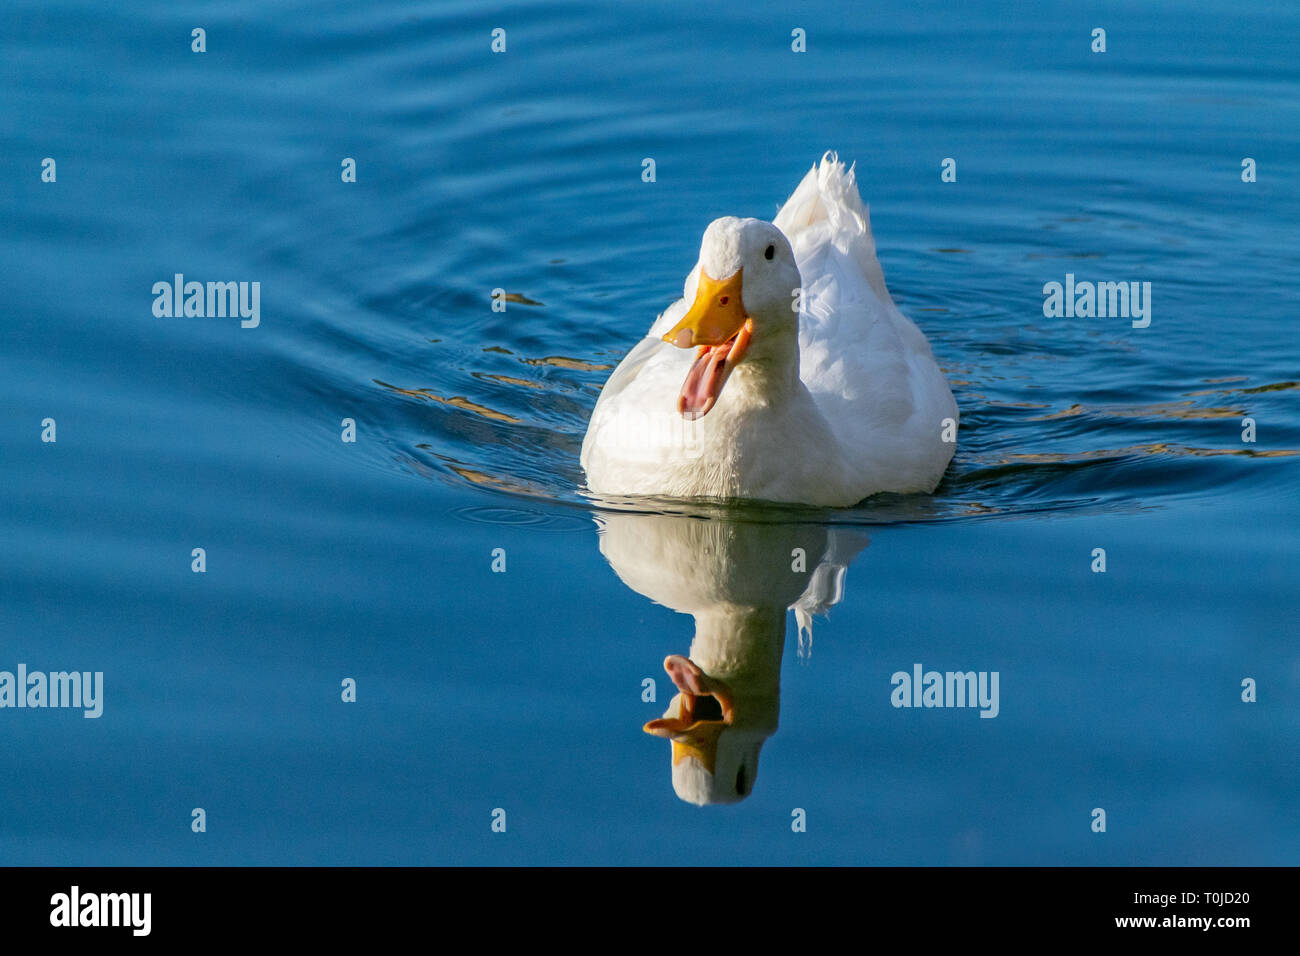 White pekin duck (anas platyrhynchos domesticus) swimming on a still clear pond with reflection in the water in early spring - Stock Image